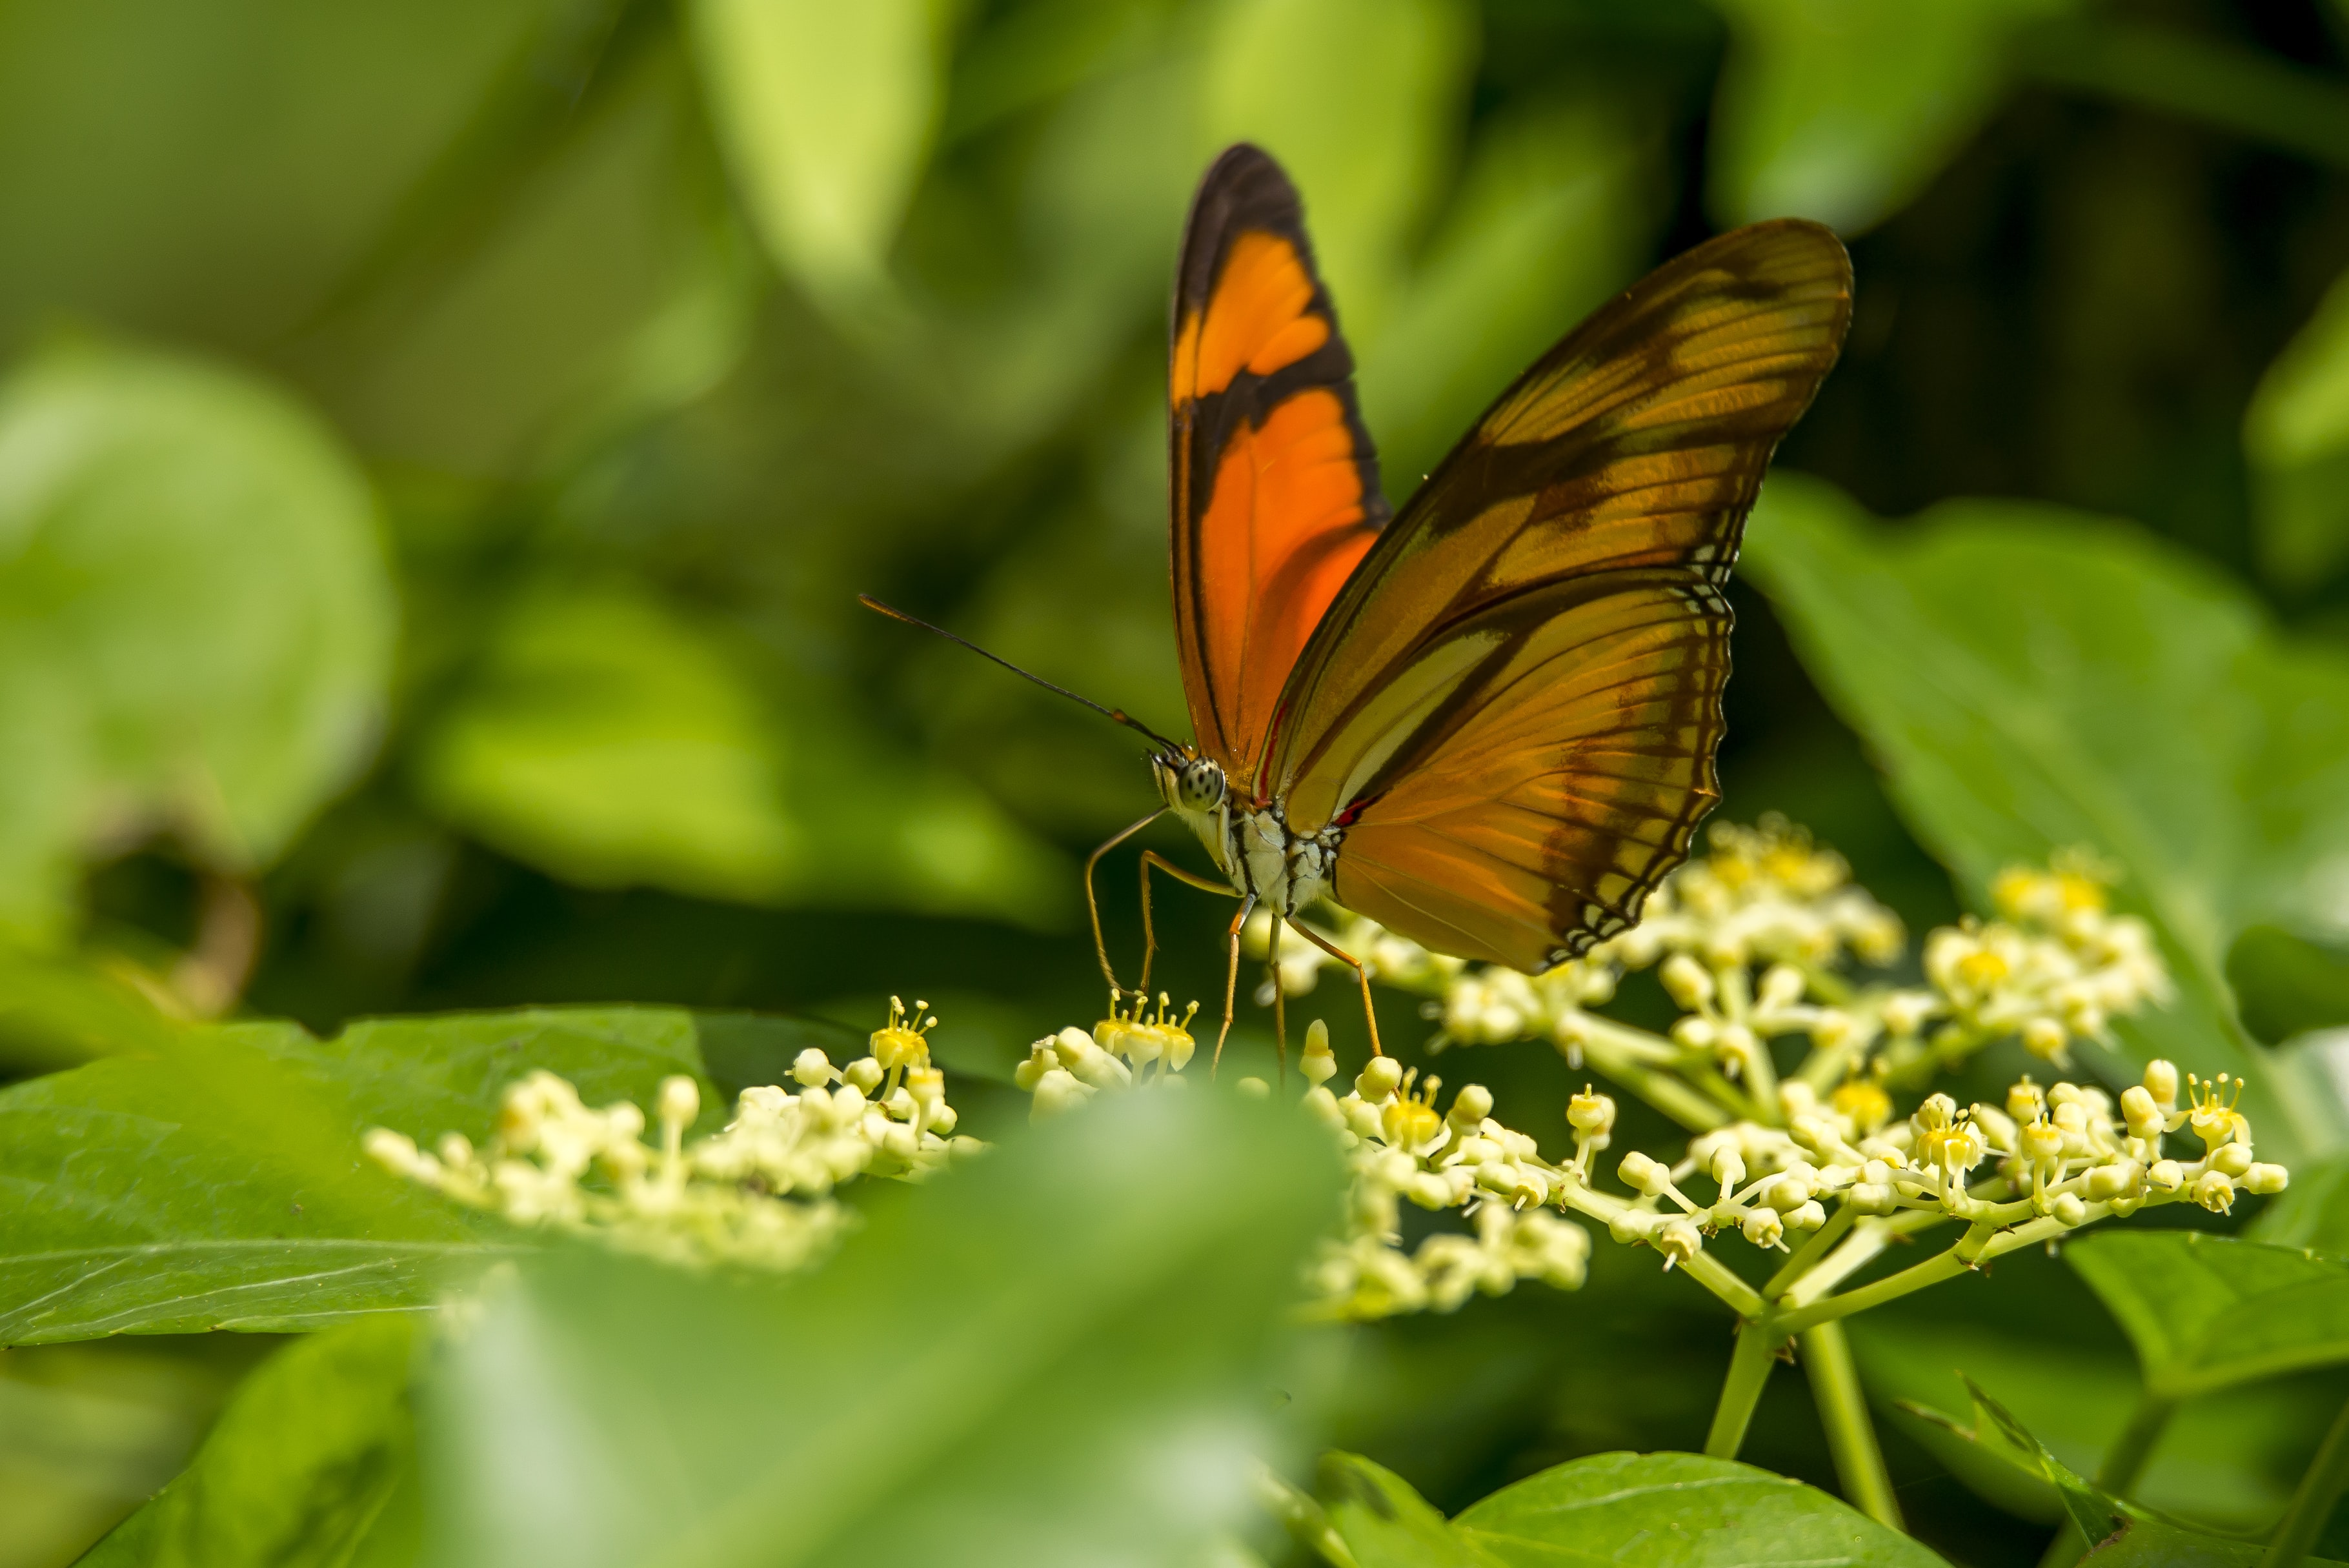 Close-up of an orange butterfly on budding flowers